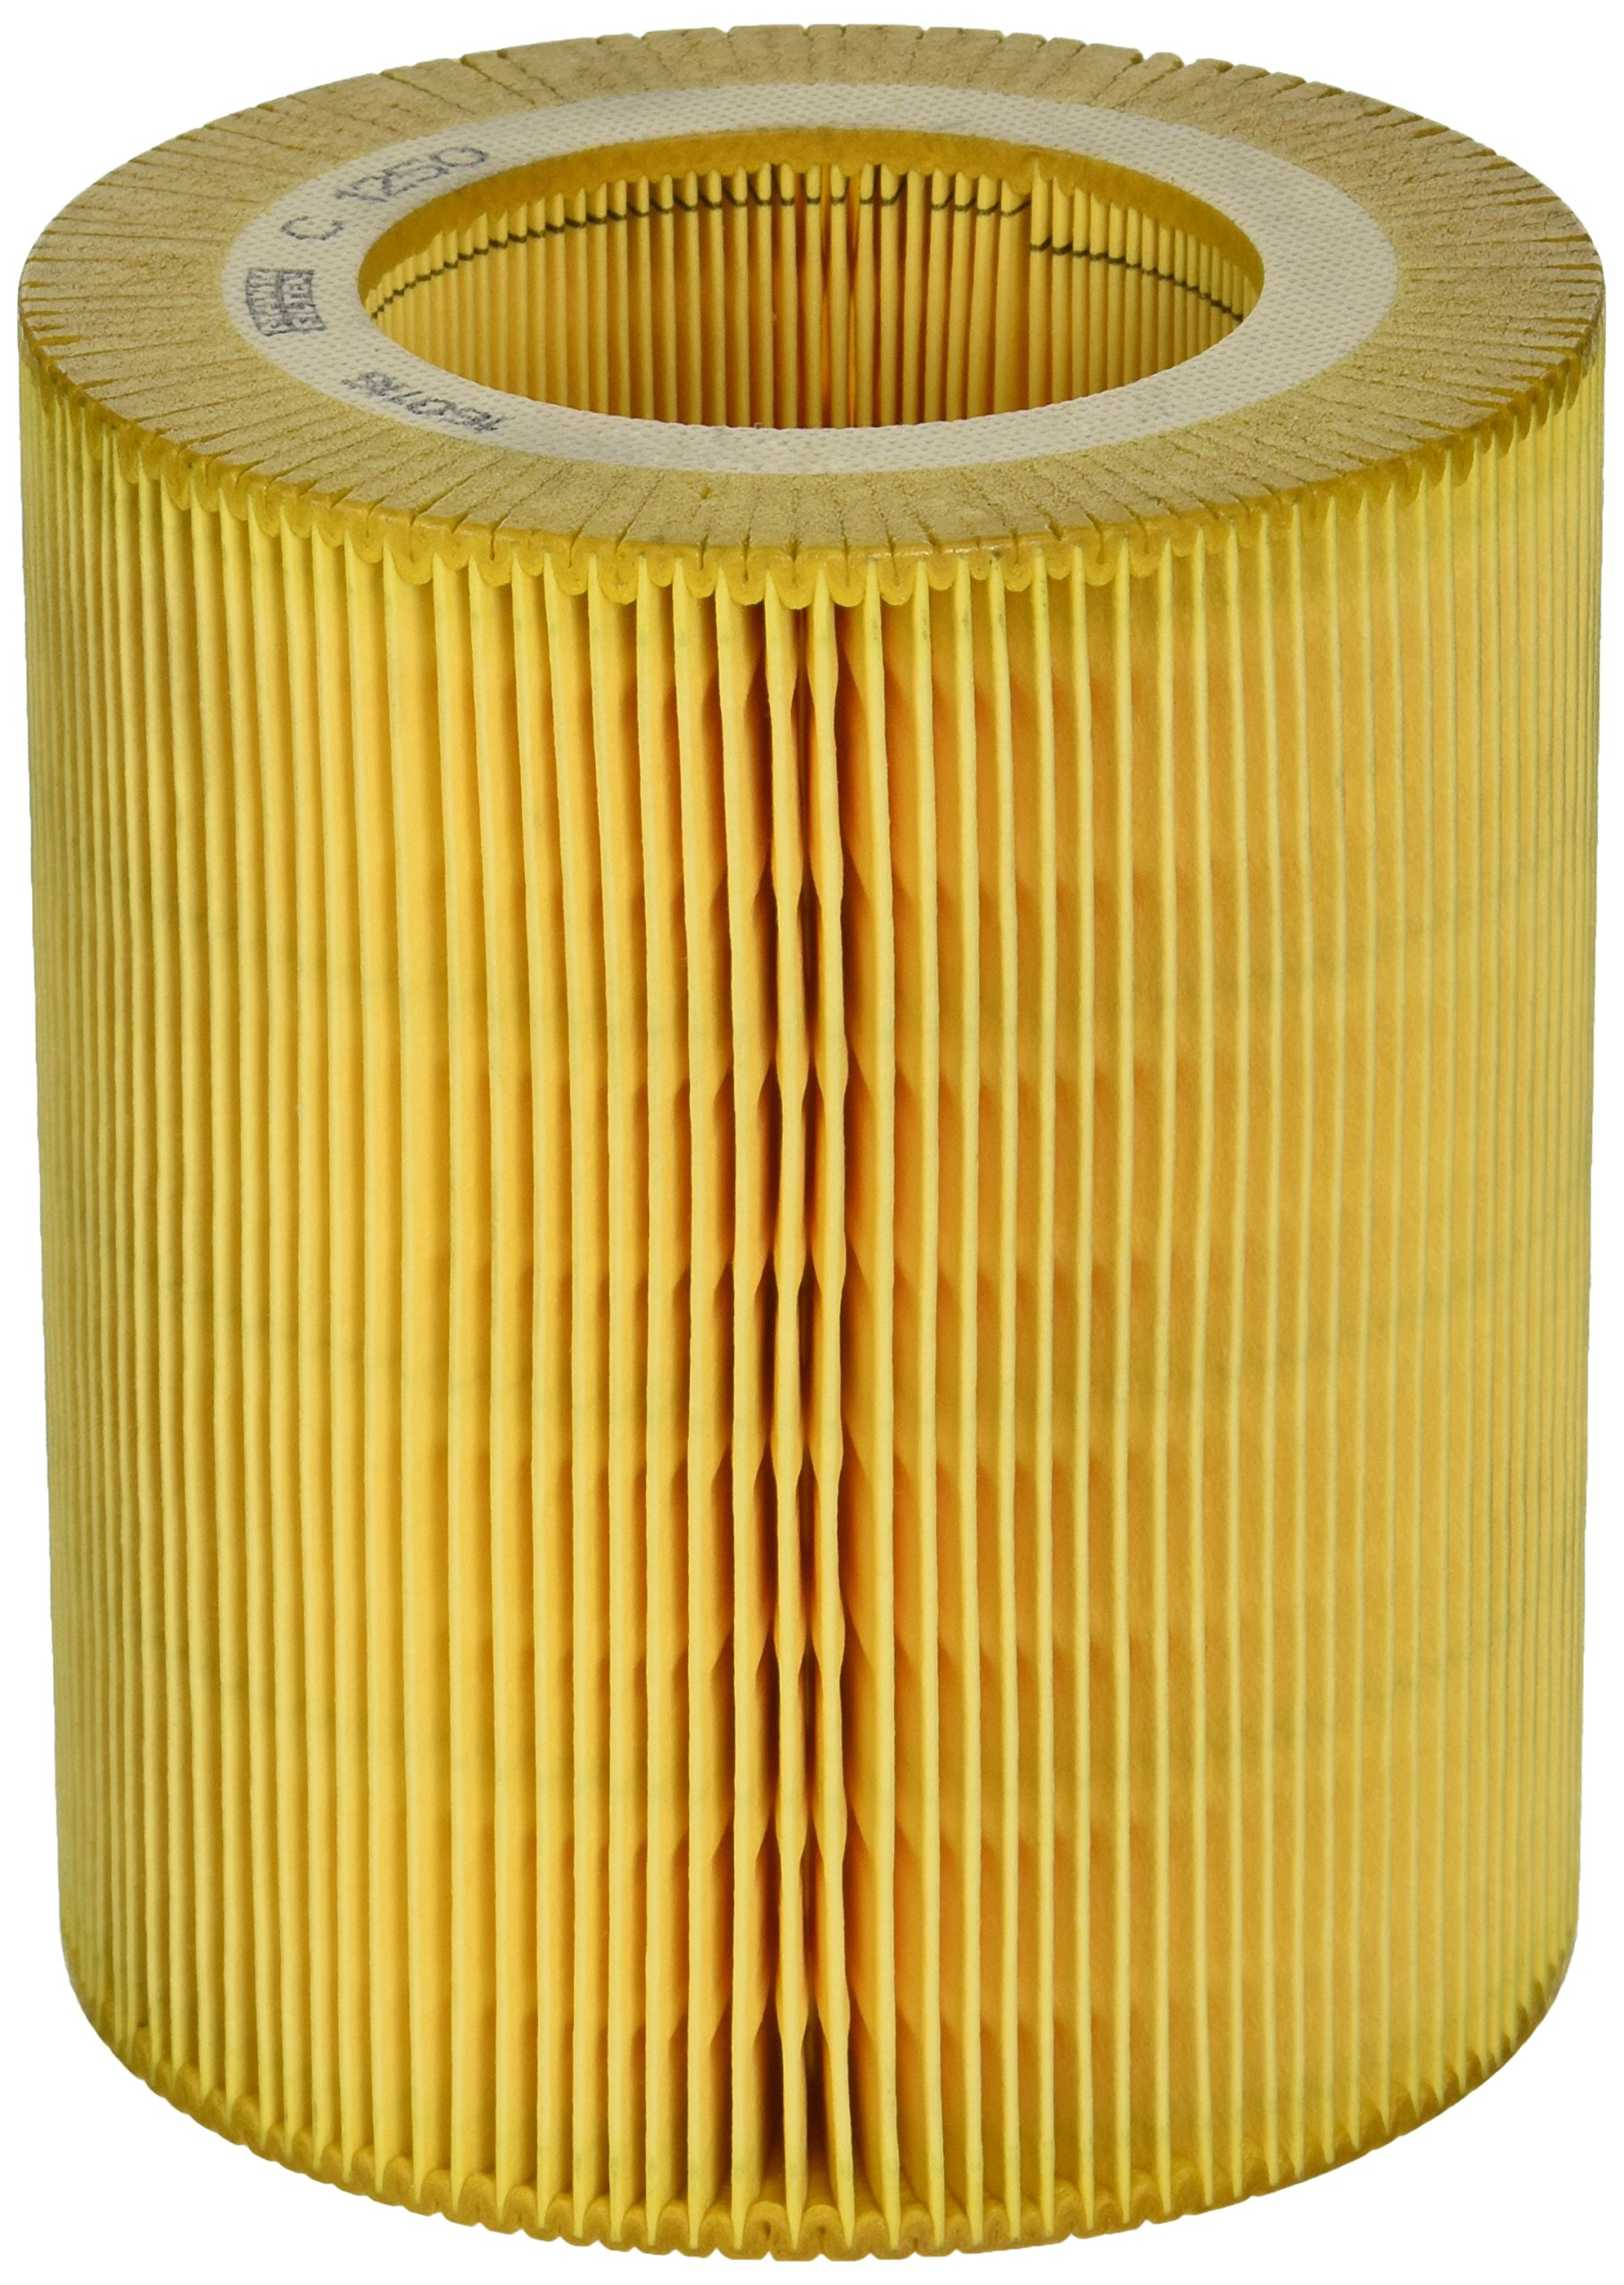 OEM Equivalent 23388275 Ingersoll Rand Replacement Filter